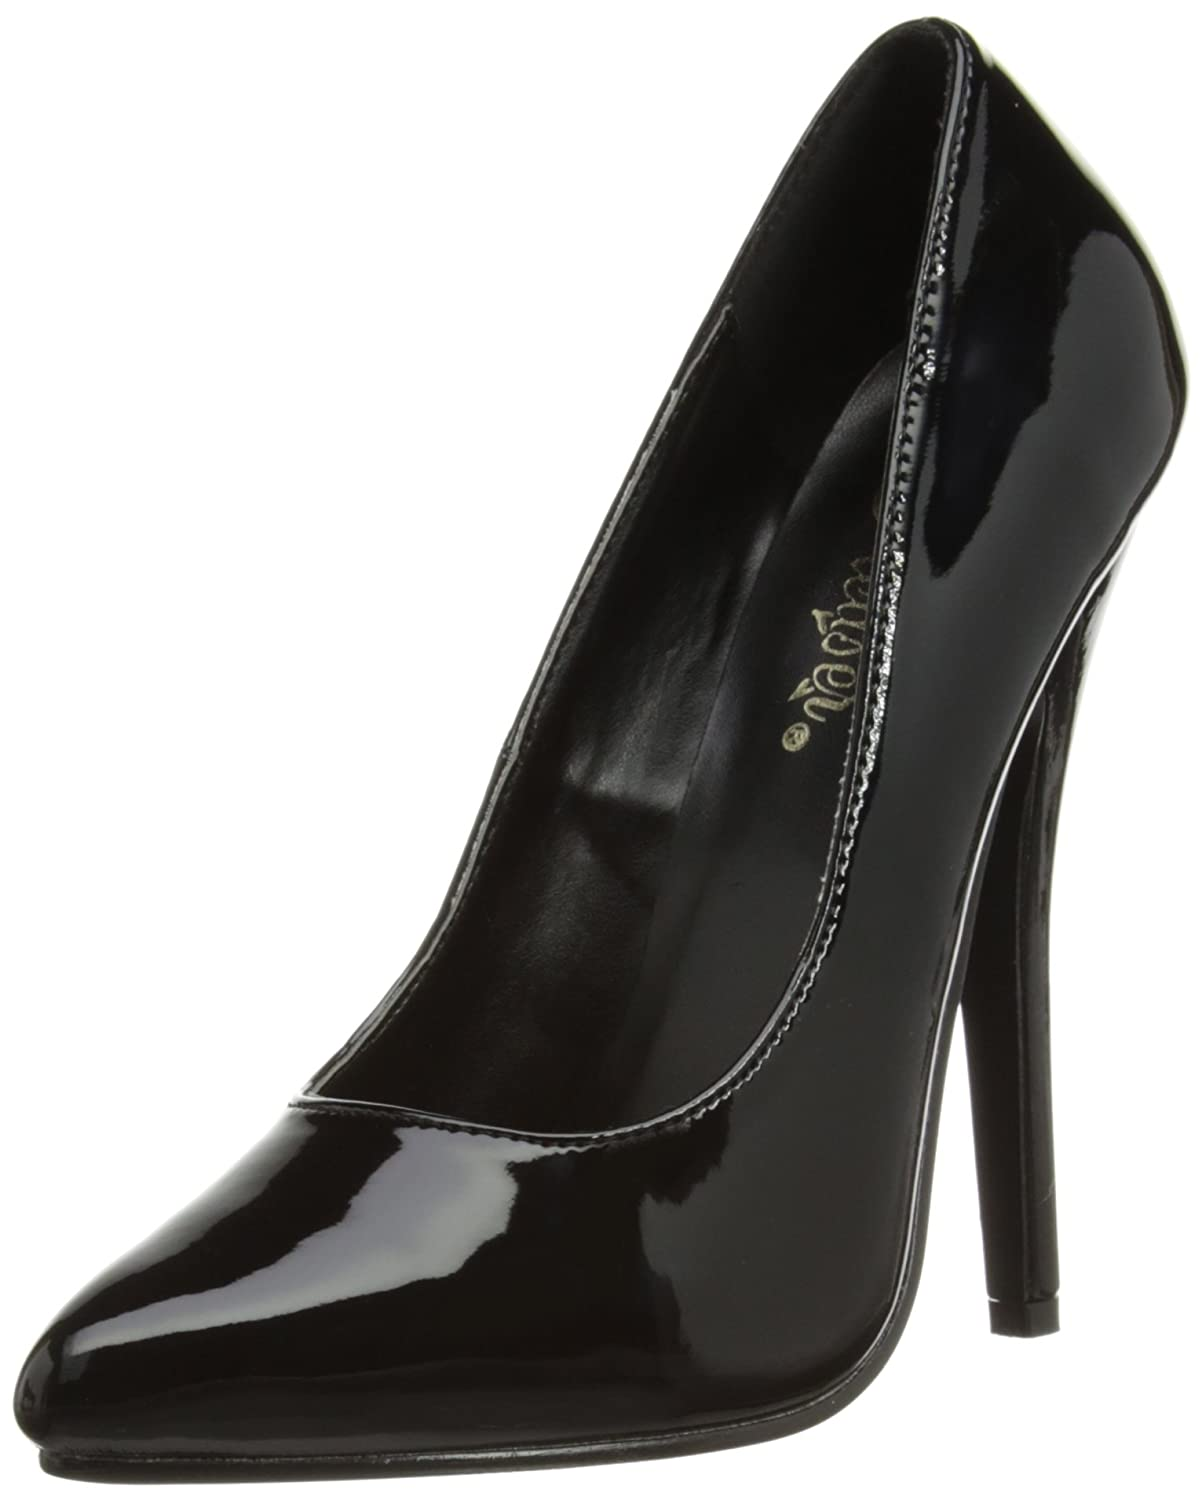 Black Patent Pleaser Women's Domina-420 Pump